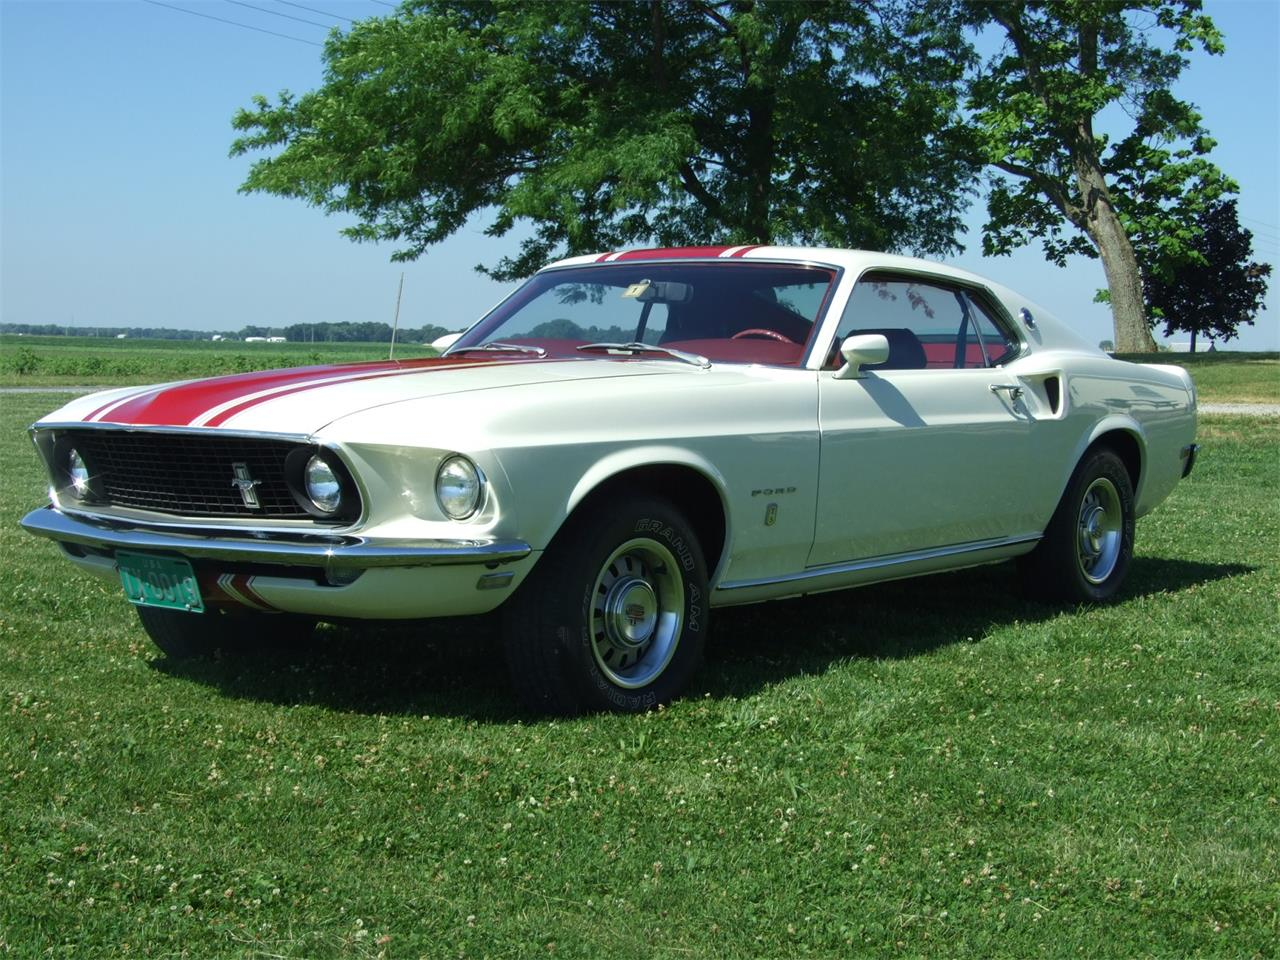 Large Picture of '69 Mustang located in Monticello Indiana Offered by Auto Connection, Inc. - JKJU